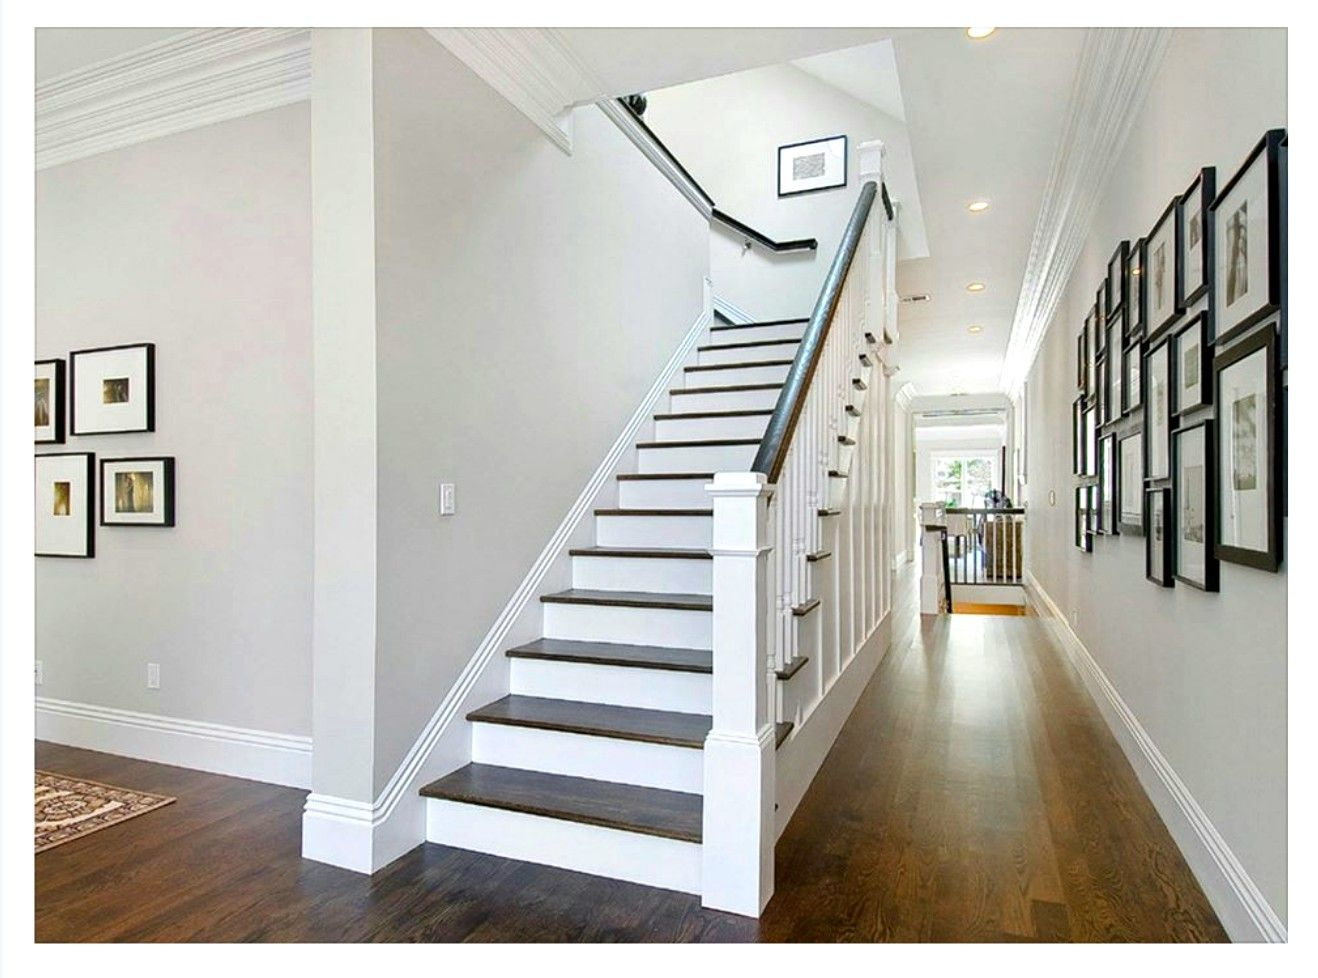 home interior design stairs%0A Walls